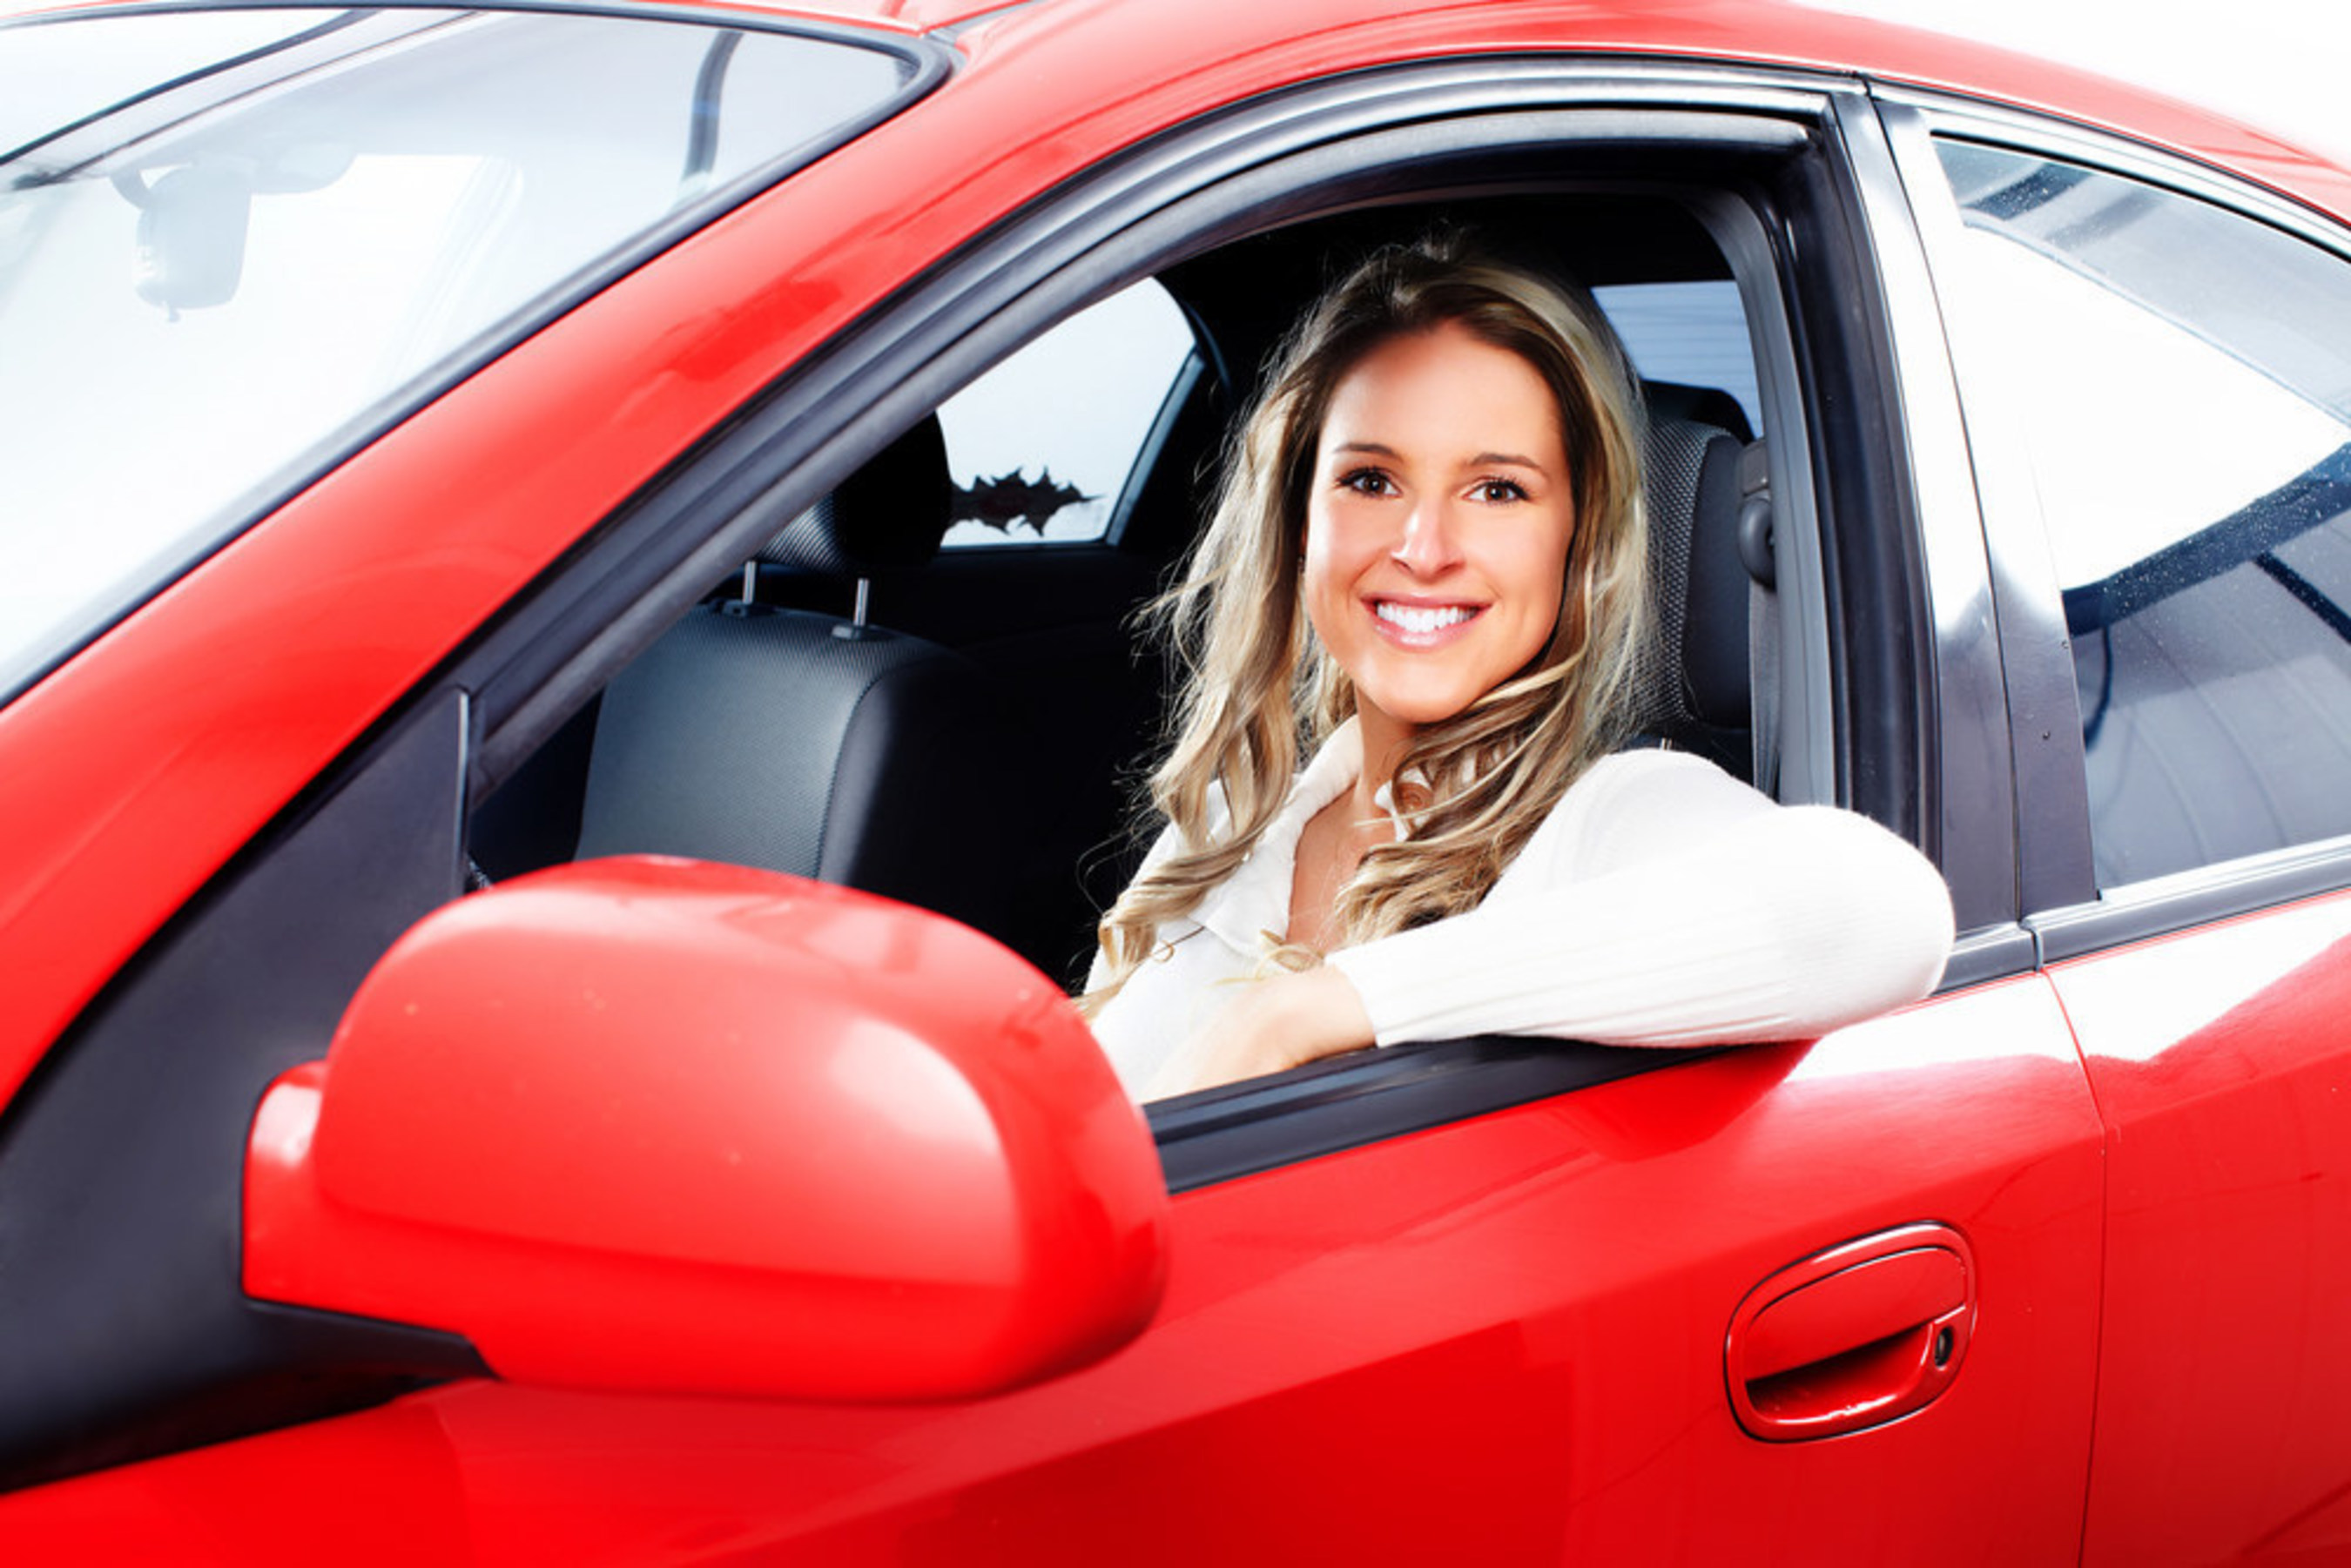 New Drivers Can Get Affordable Coverage for their Cars by Comparing Quotes!